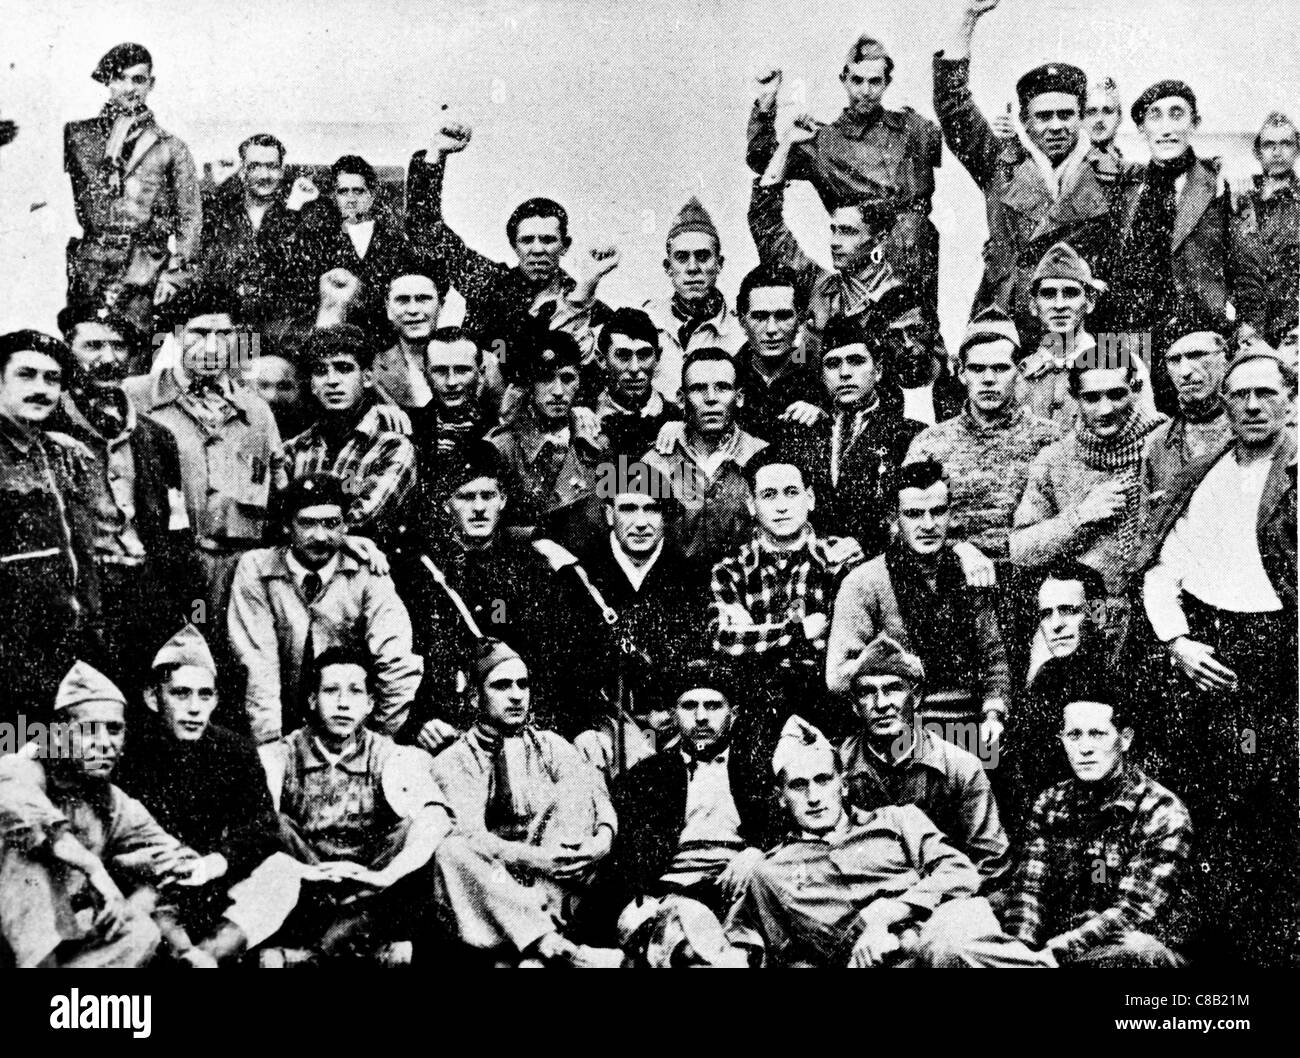 Republican volunteers,the Spanish Civil War,1936 - Stock Image